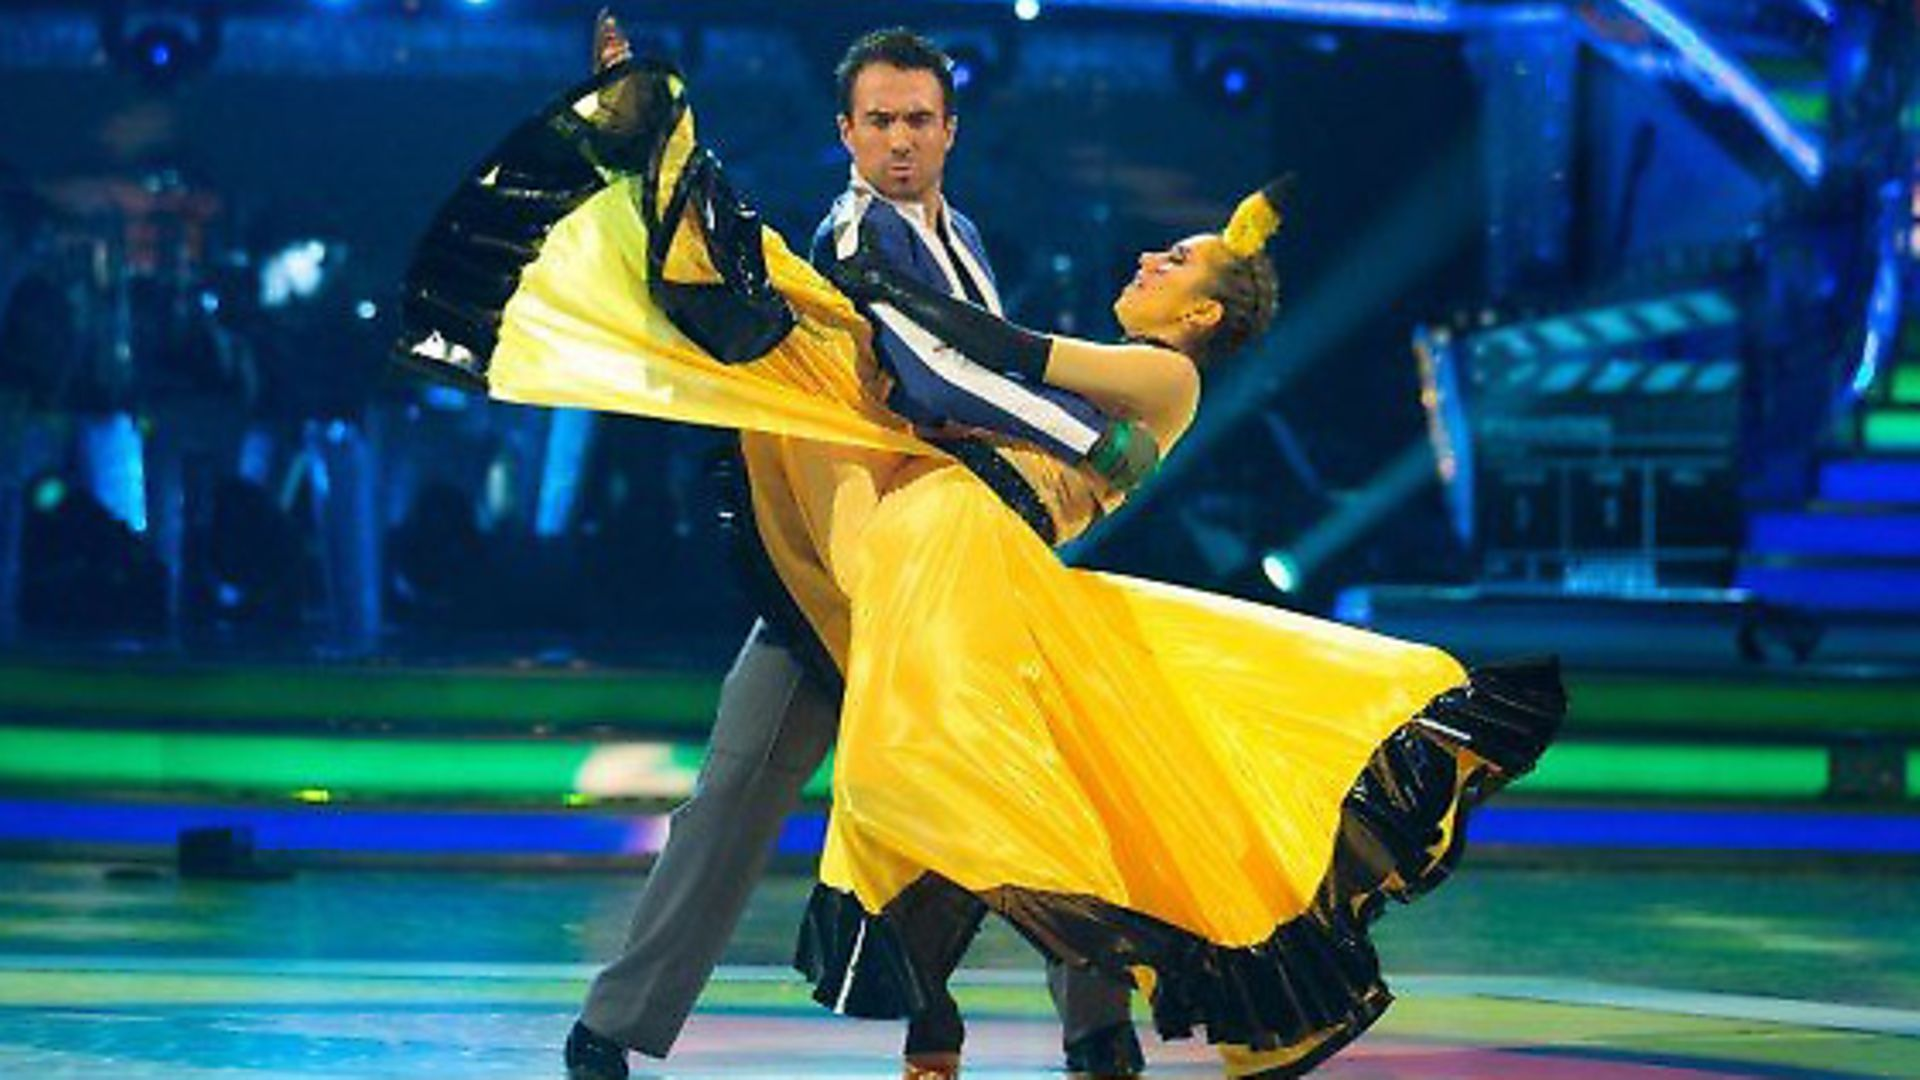 Paralympian Will Bayley and partner Janette Manrara perform a Paso Doble on Strictly Come Dancing. Picture: BBC - Credit: Archant